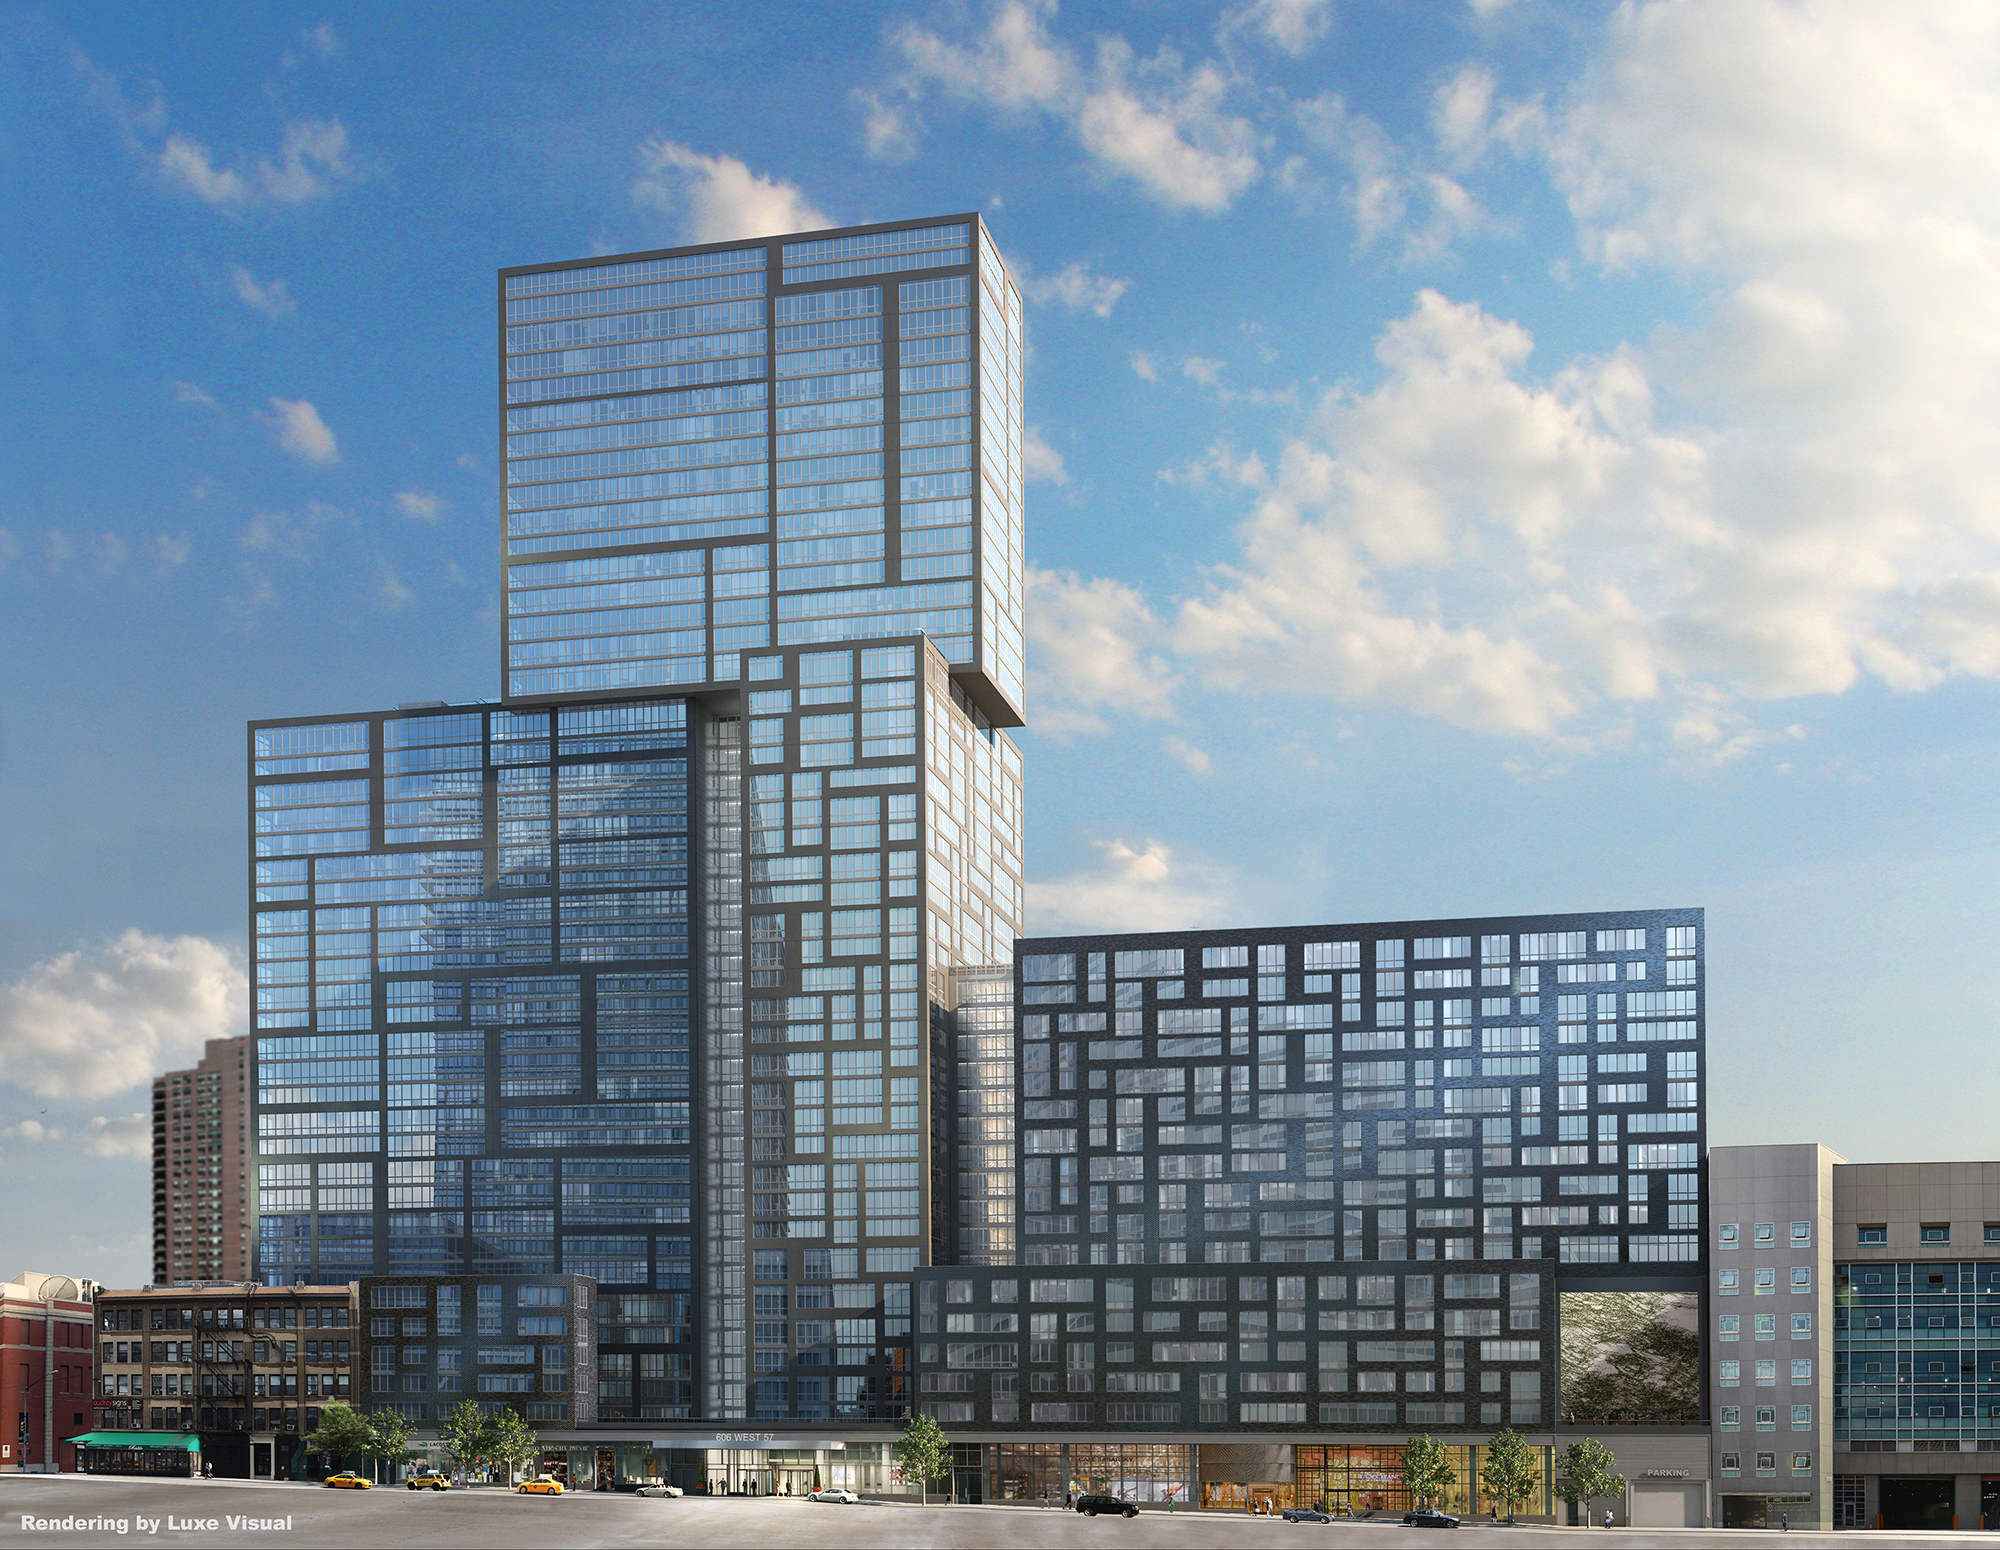 Rendering of 606 West 57th Street. Via SLCE Architects